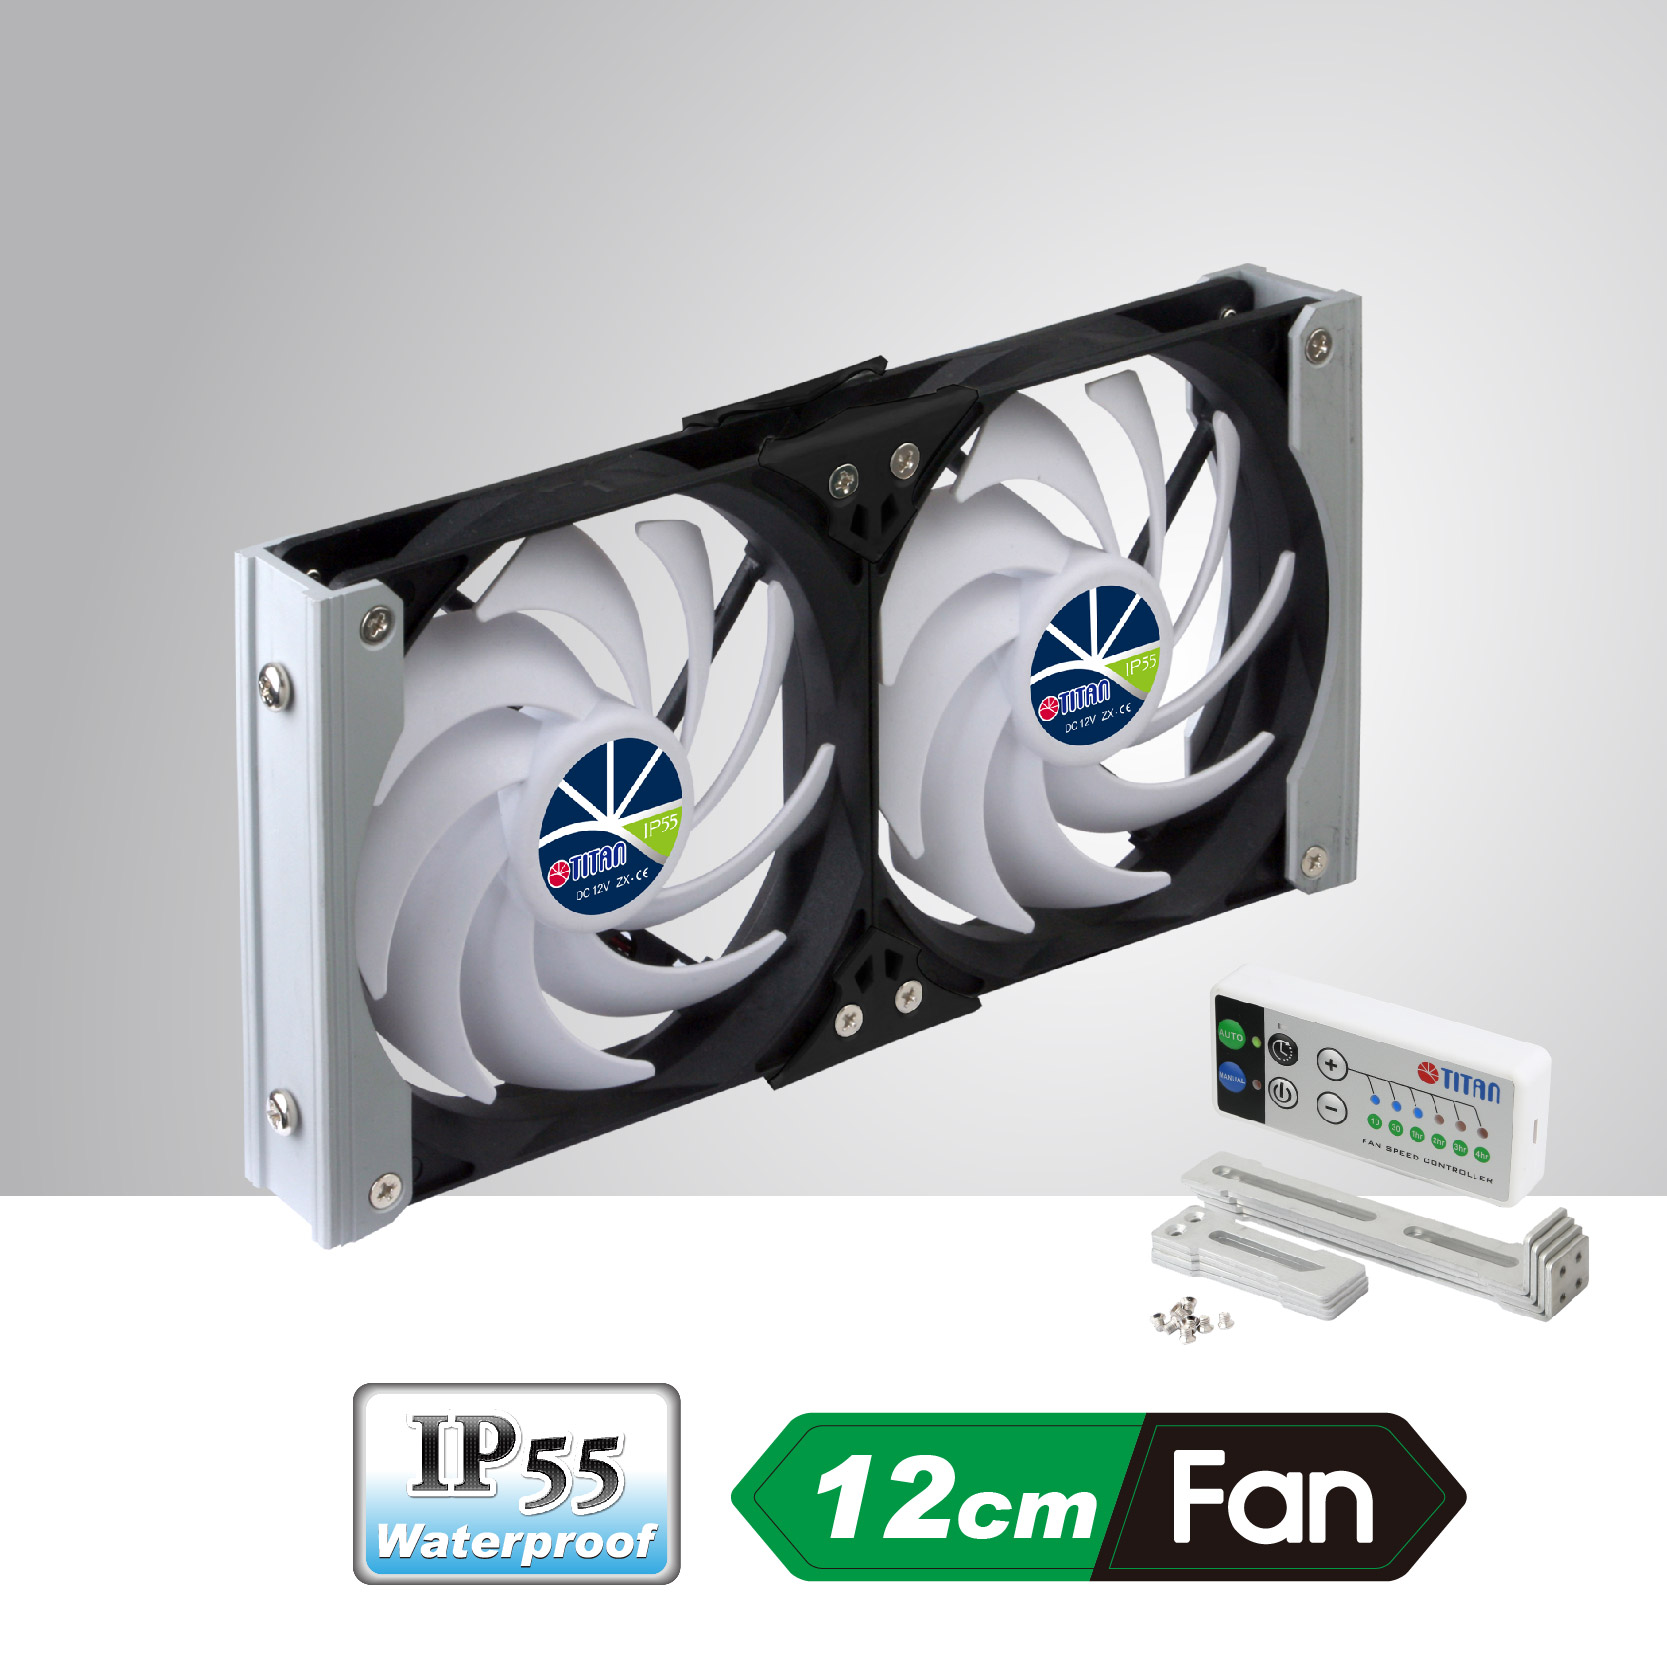 12v Dc Ip55 Waterproof Double Mount Ventilation Cooling Fan With Amplifier Timer Titan Rack Is Equipped 6 Levels Setting And Speed Control The Has Mode Of Auto Manual You Can Both A Whisper